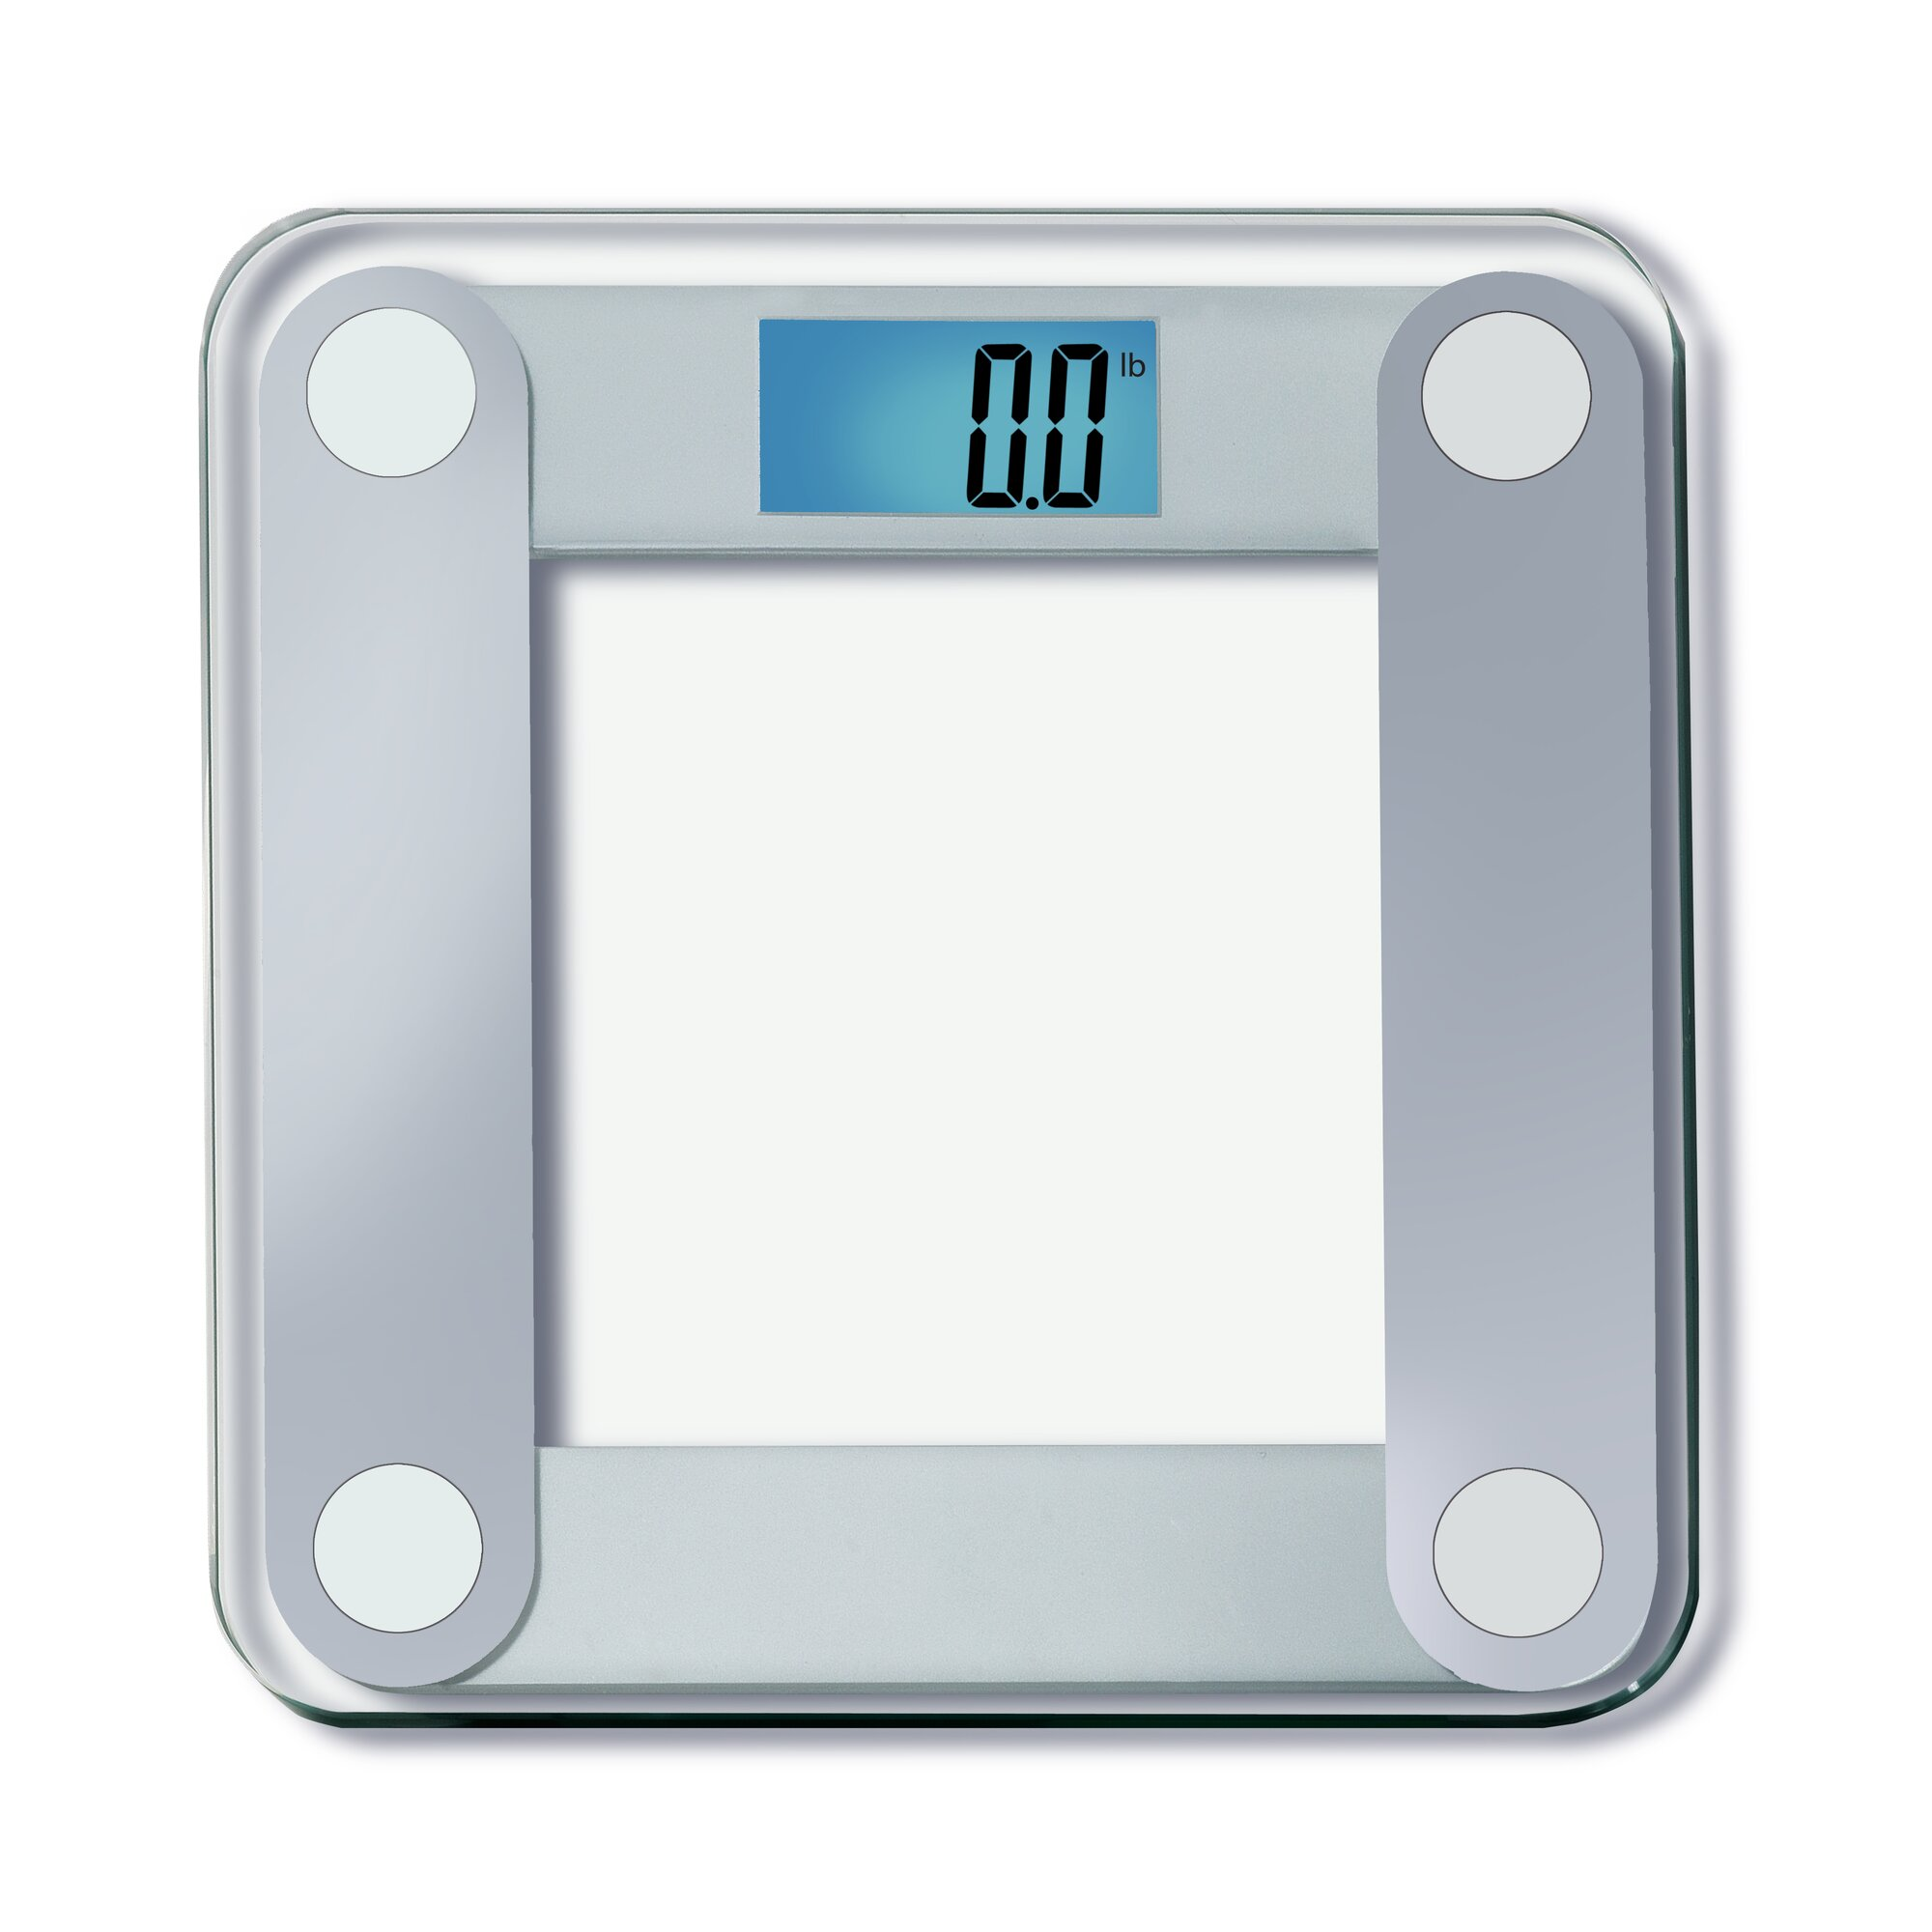 Calibrate digital bathroom scale - Digital Bathroom Scale With Extra Large Backlight In Silver